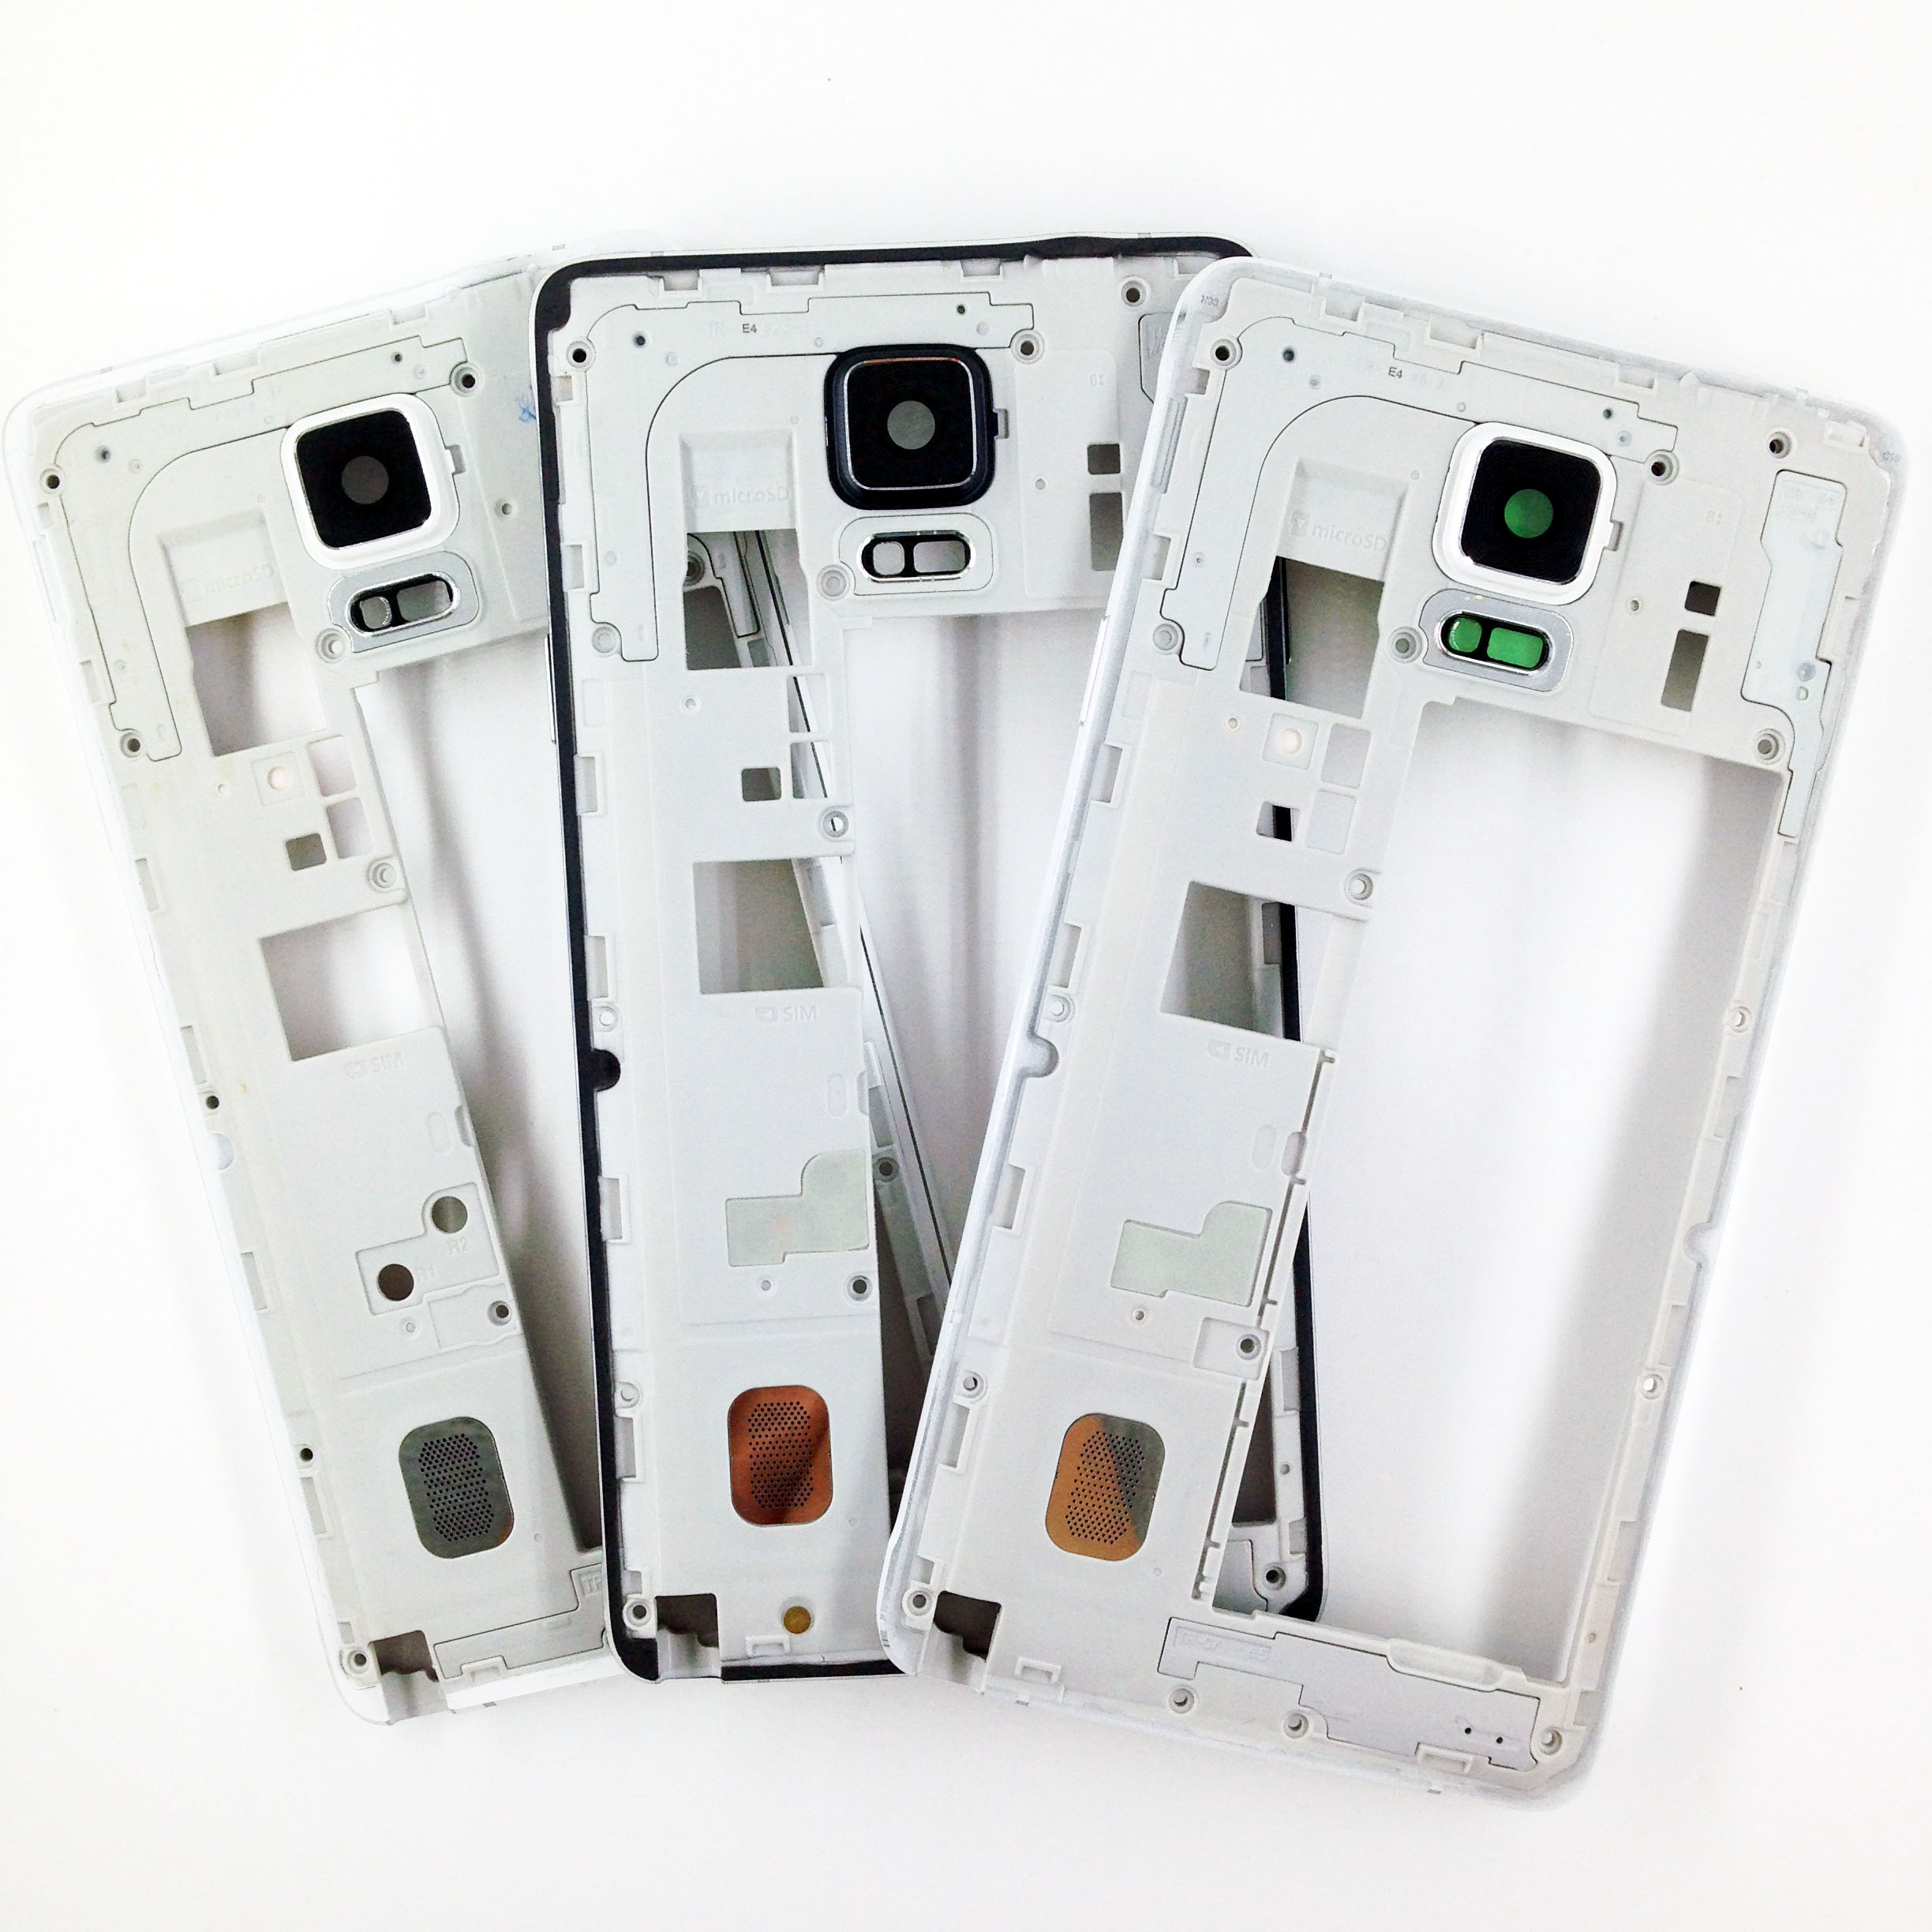 For Samsung Galaxy Note 4 N9100 N910F N910V N9108V N910C Middle Chassis Plate Bezel Mid Housing